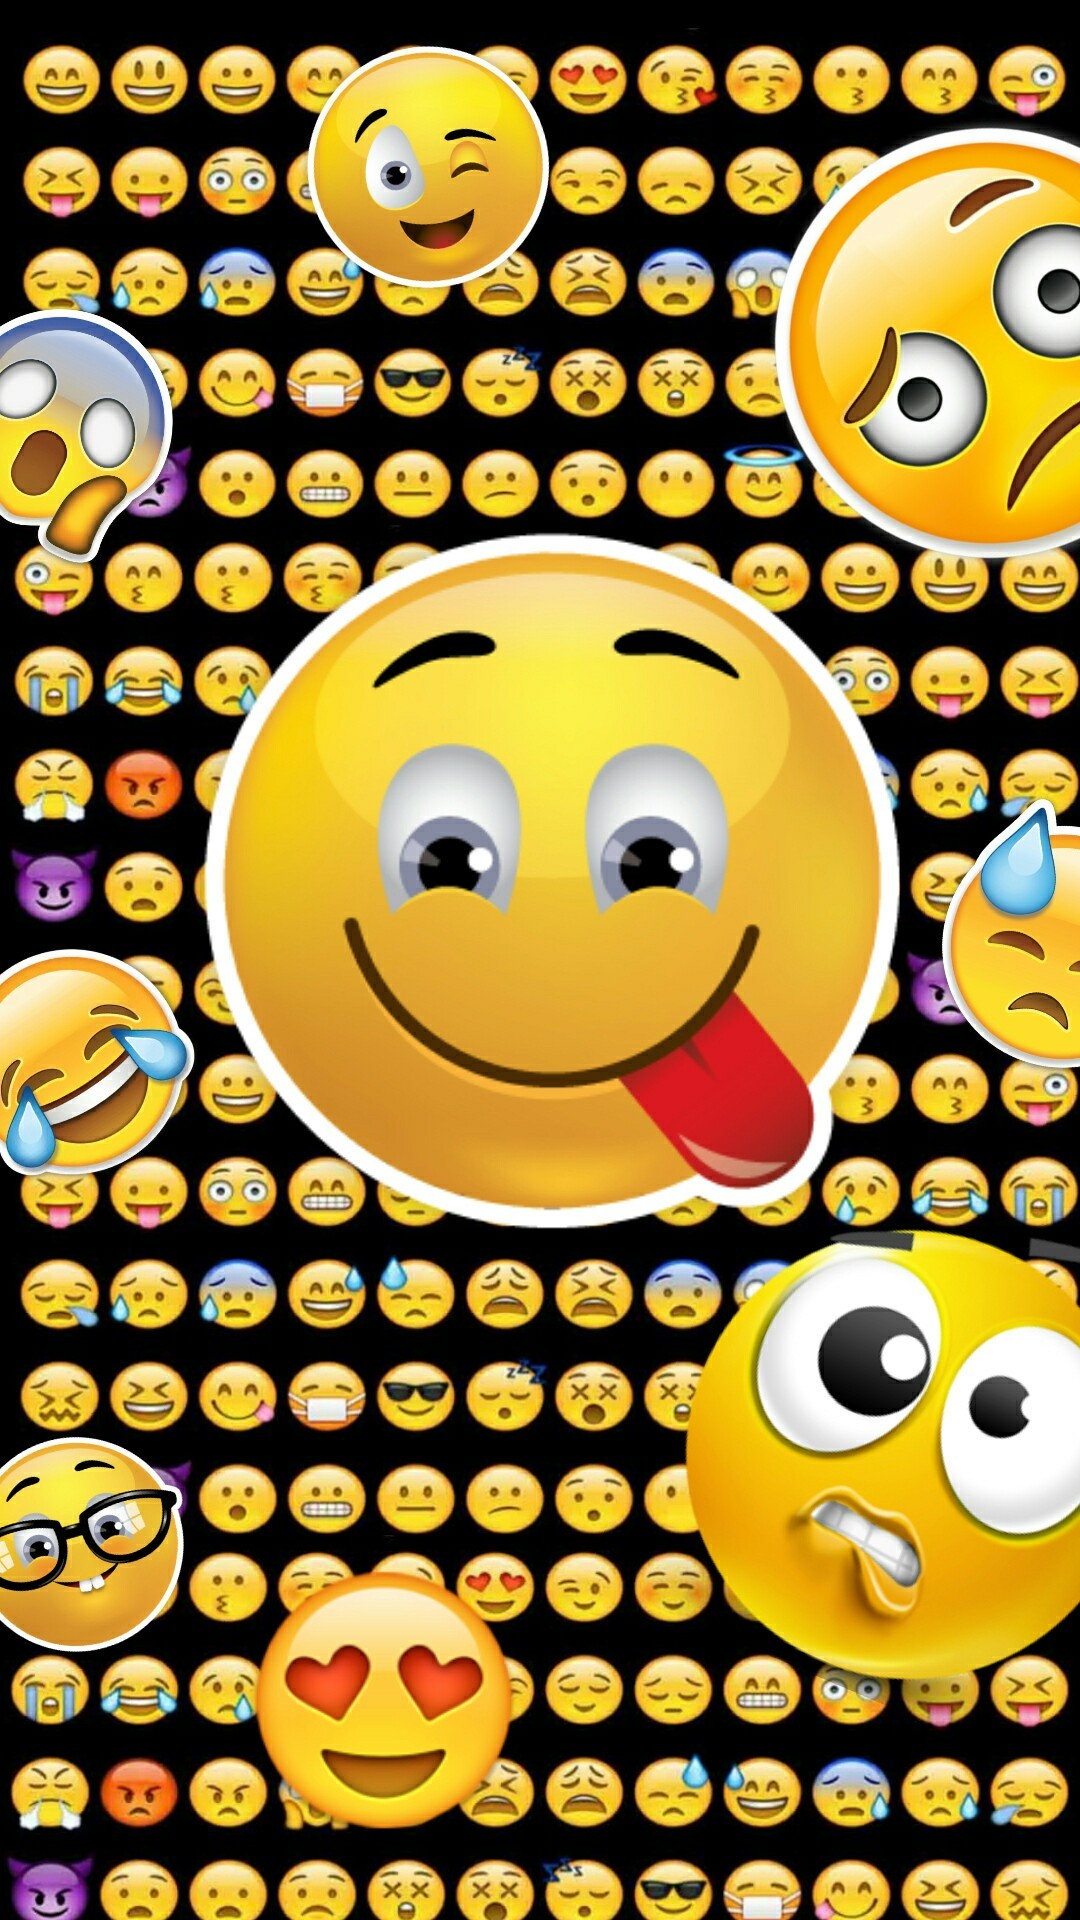 Cute Girly Wallpapers For Iphone 6 Plus Hd Emoji Wallpapers 70 Images